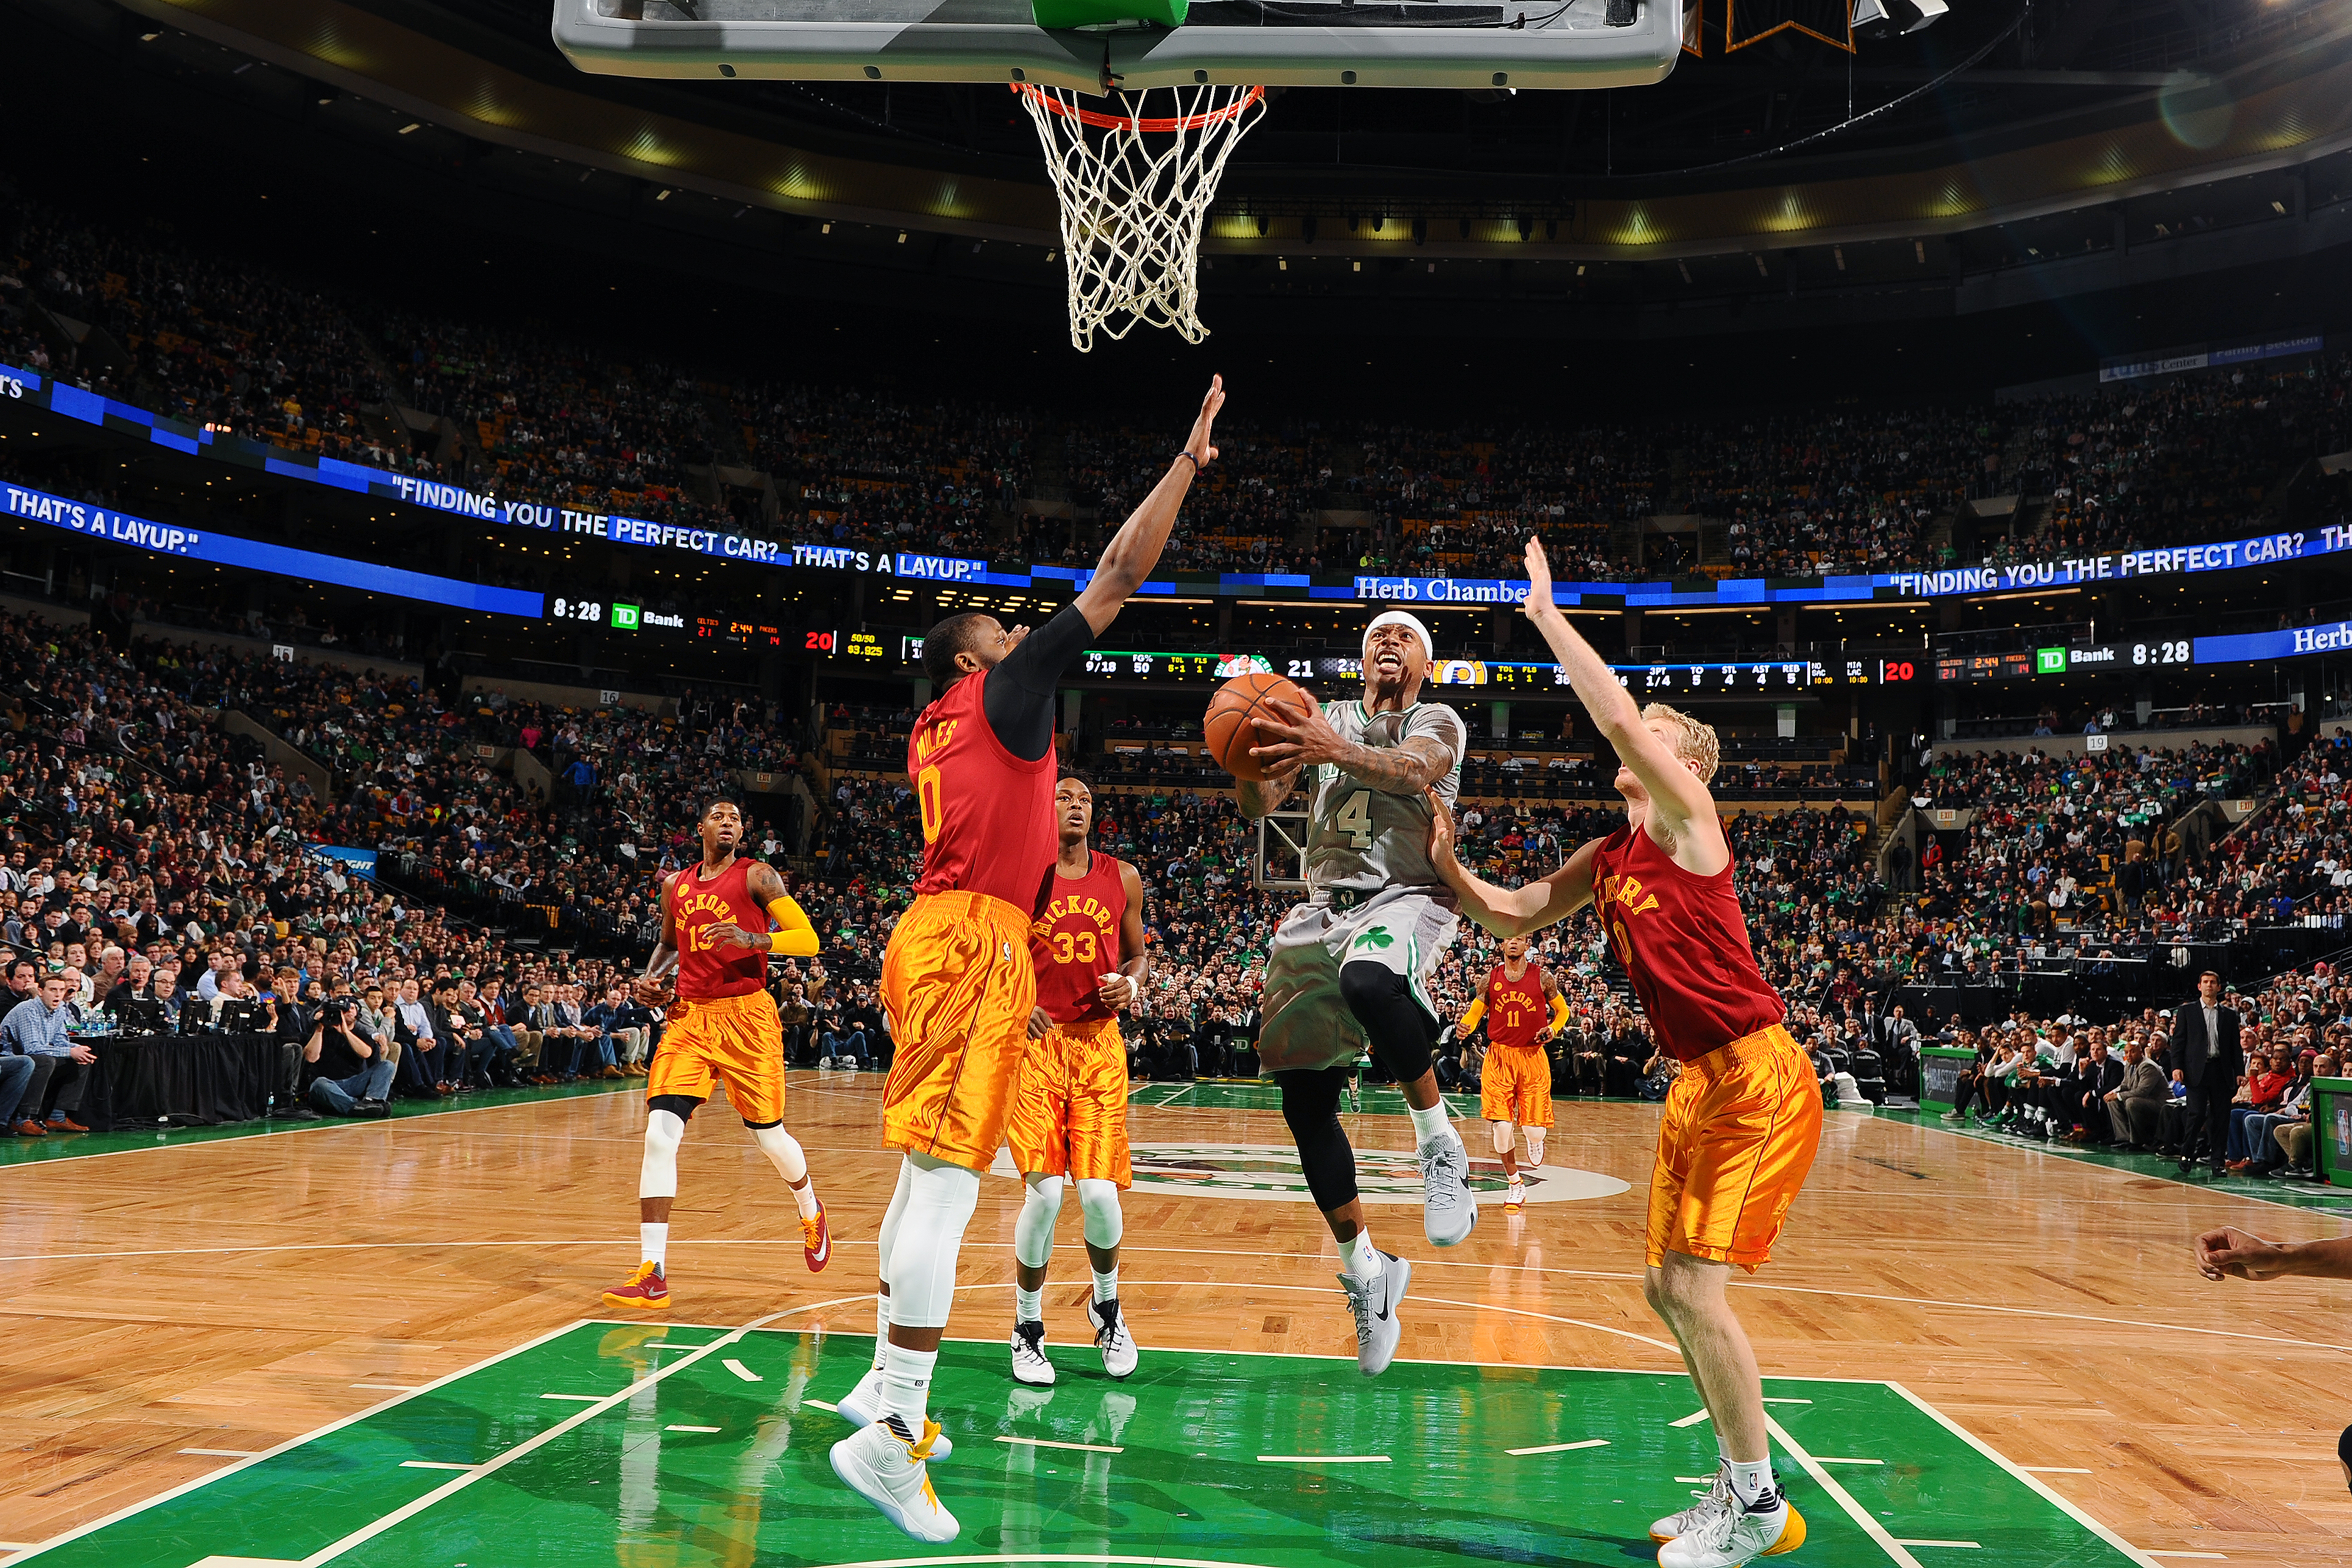 BOSTON, MA - JANUARY 13: Isaiah Thomas #4 of the Boston Celtics drives to the basket during the game against the Indiana Pacers on January 13, 2016 at TD Garden in Boston, Massachusetts. (Photo by Brian Babineau/NBAE via Getty Images)